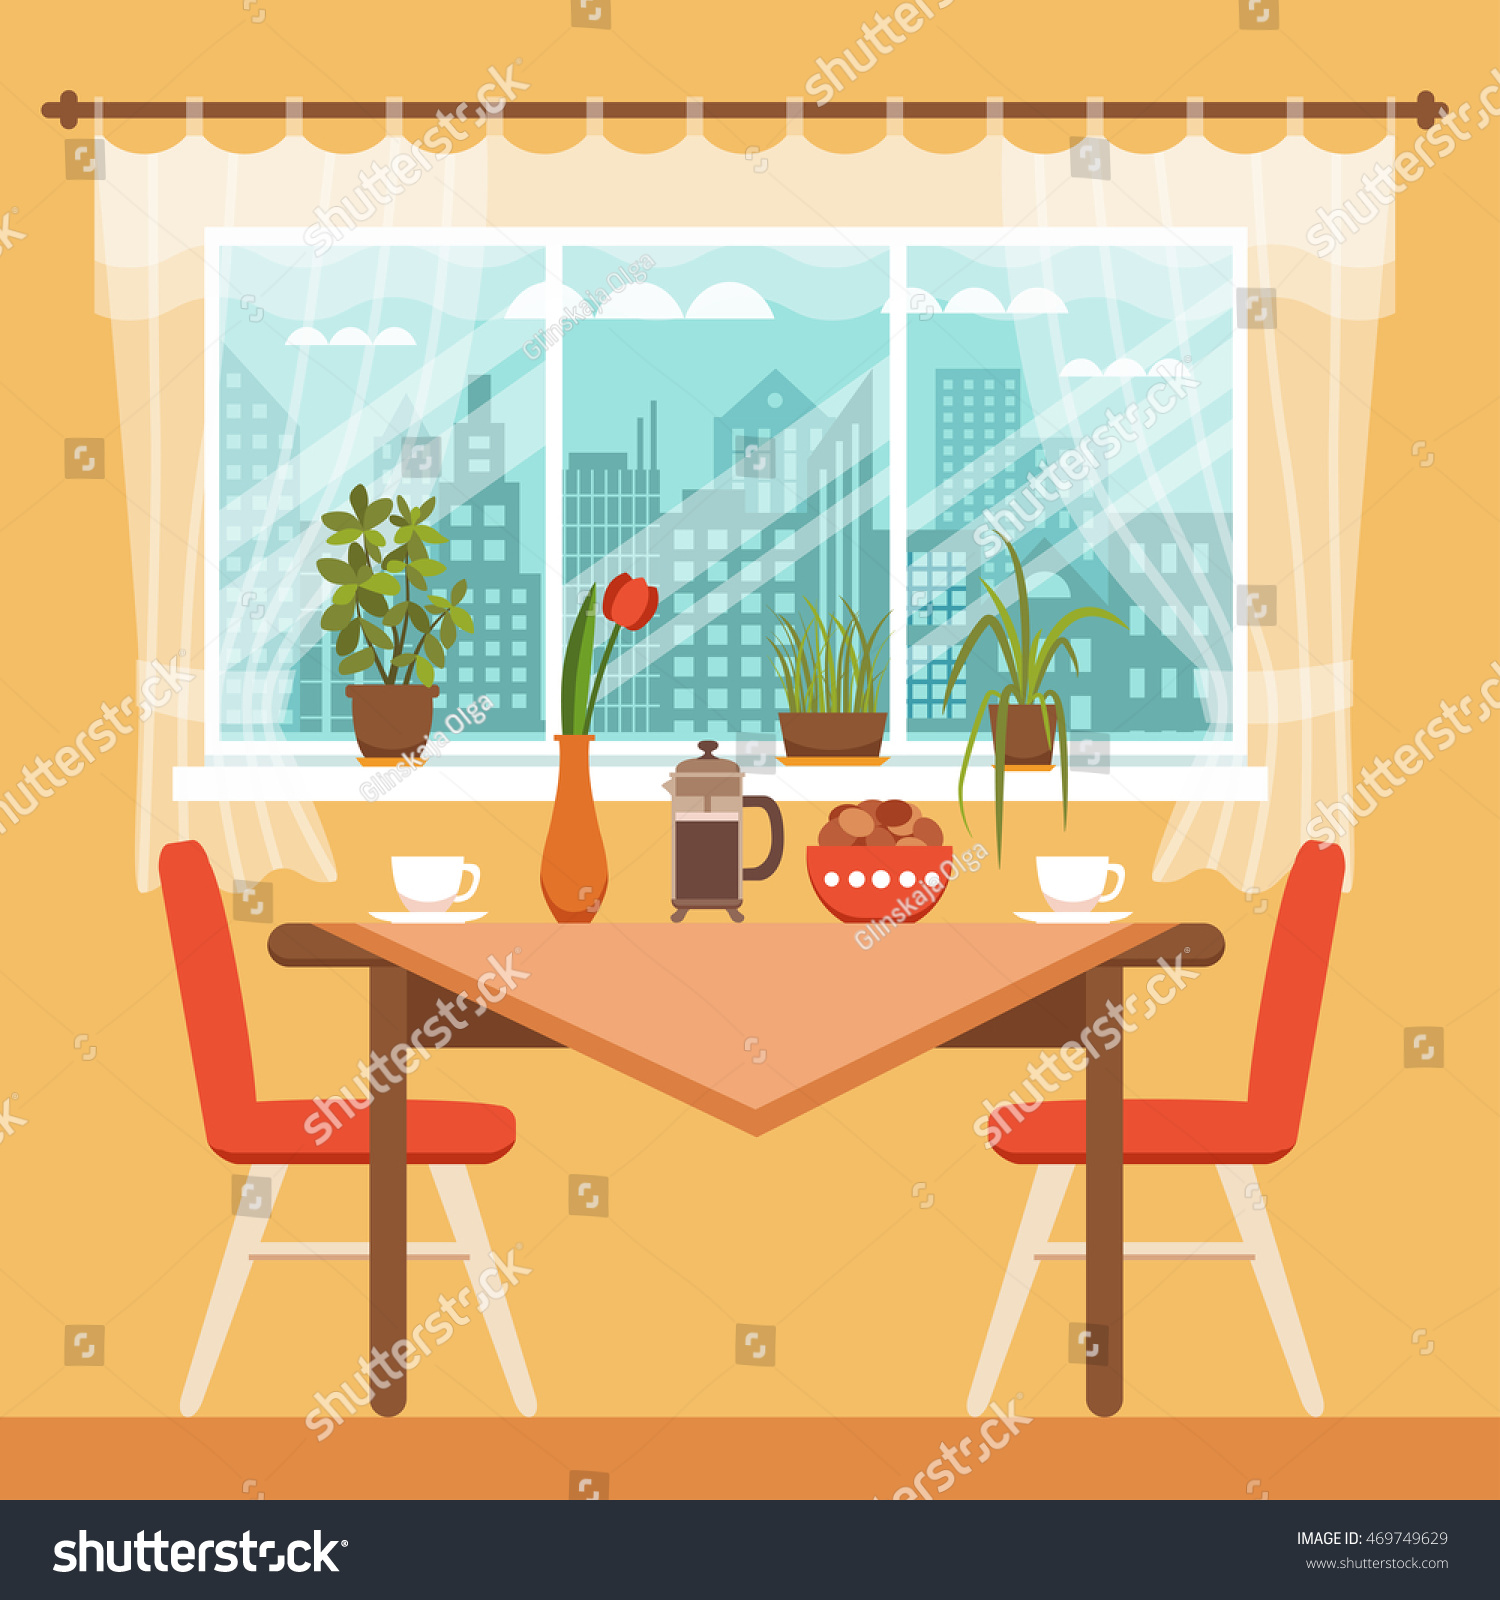 Cartoon kitchen with cabinets and window vector art illustration - Dining Table With Chairs And Coffee Cups Near Window Curtains And House Plants Colorful Vector Illustration